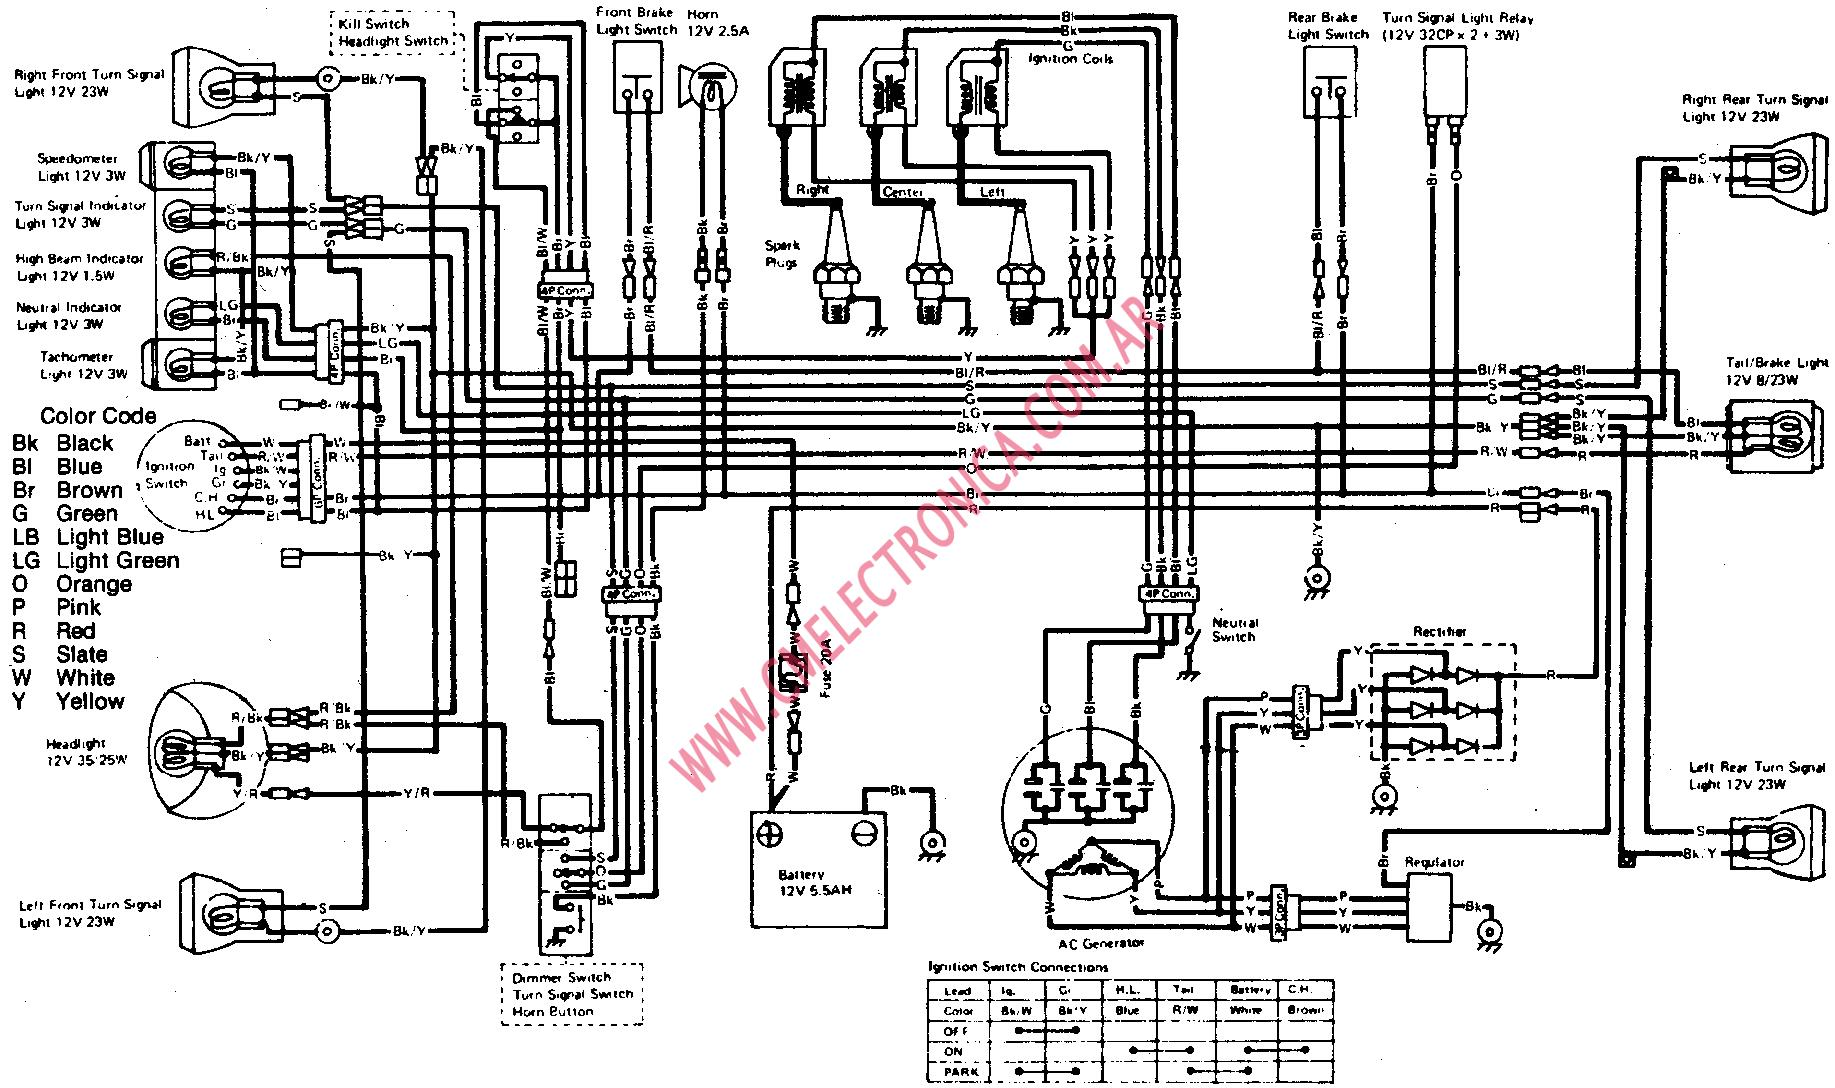 Kawasaki Bayou 250 Electric Start Wiring | Wiring Diagrams on triton trailer wiring diagram, kawasaki atv wiring diagram, kawasaki 4 wheeler wiring diagram, kawasaki 250 parts diagram, kawasaki ignition system wiring diagram, kawasaki 100 wiring diagram, klr 650 wiring diagram, kawasaki kz1000 wiring-diagram, kawasaki mojave 250, kawasaki motorcycle wiring diagrams, ezgo wiring diagram, kawasaki bayou 185 wiring-diagram, kawasaki mule wiring-diagram, kawasaki 500 wiring diagram, suzuki marauder wiring diagram, kawasaki 750 wiring diagram, kawasaki bayou 300 wiring diagram, kawasaki 400 wiring diagram, kawasaki bayou 220 wiring diagram, kawasaki engine wiring diagrams,